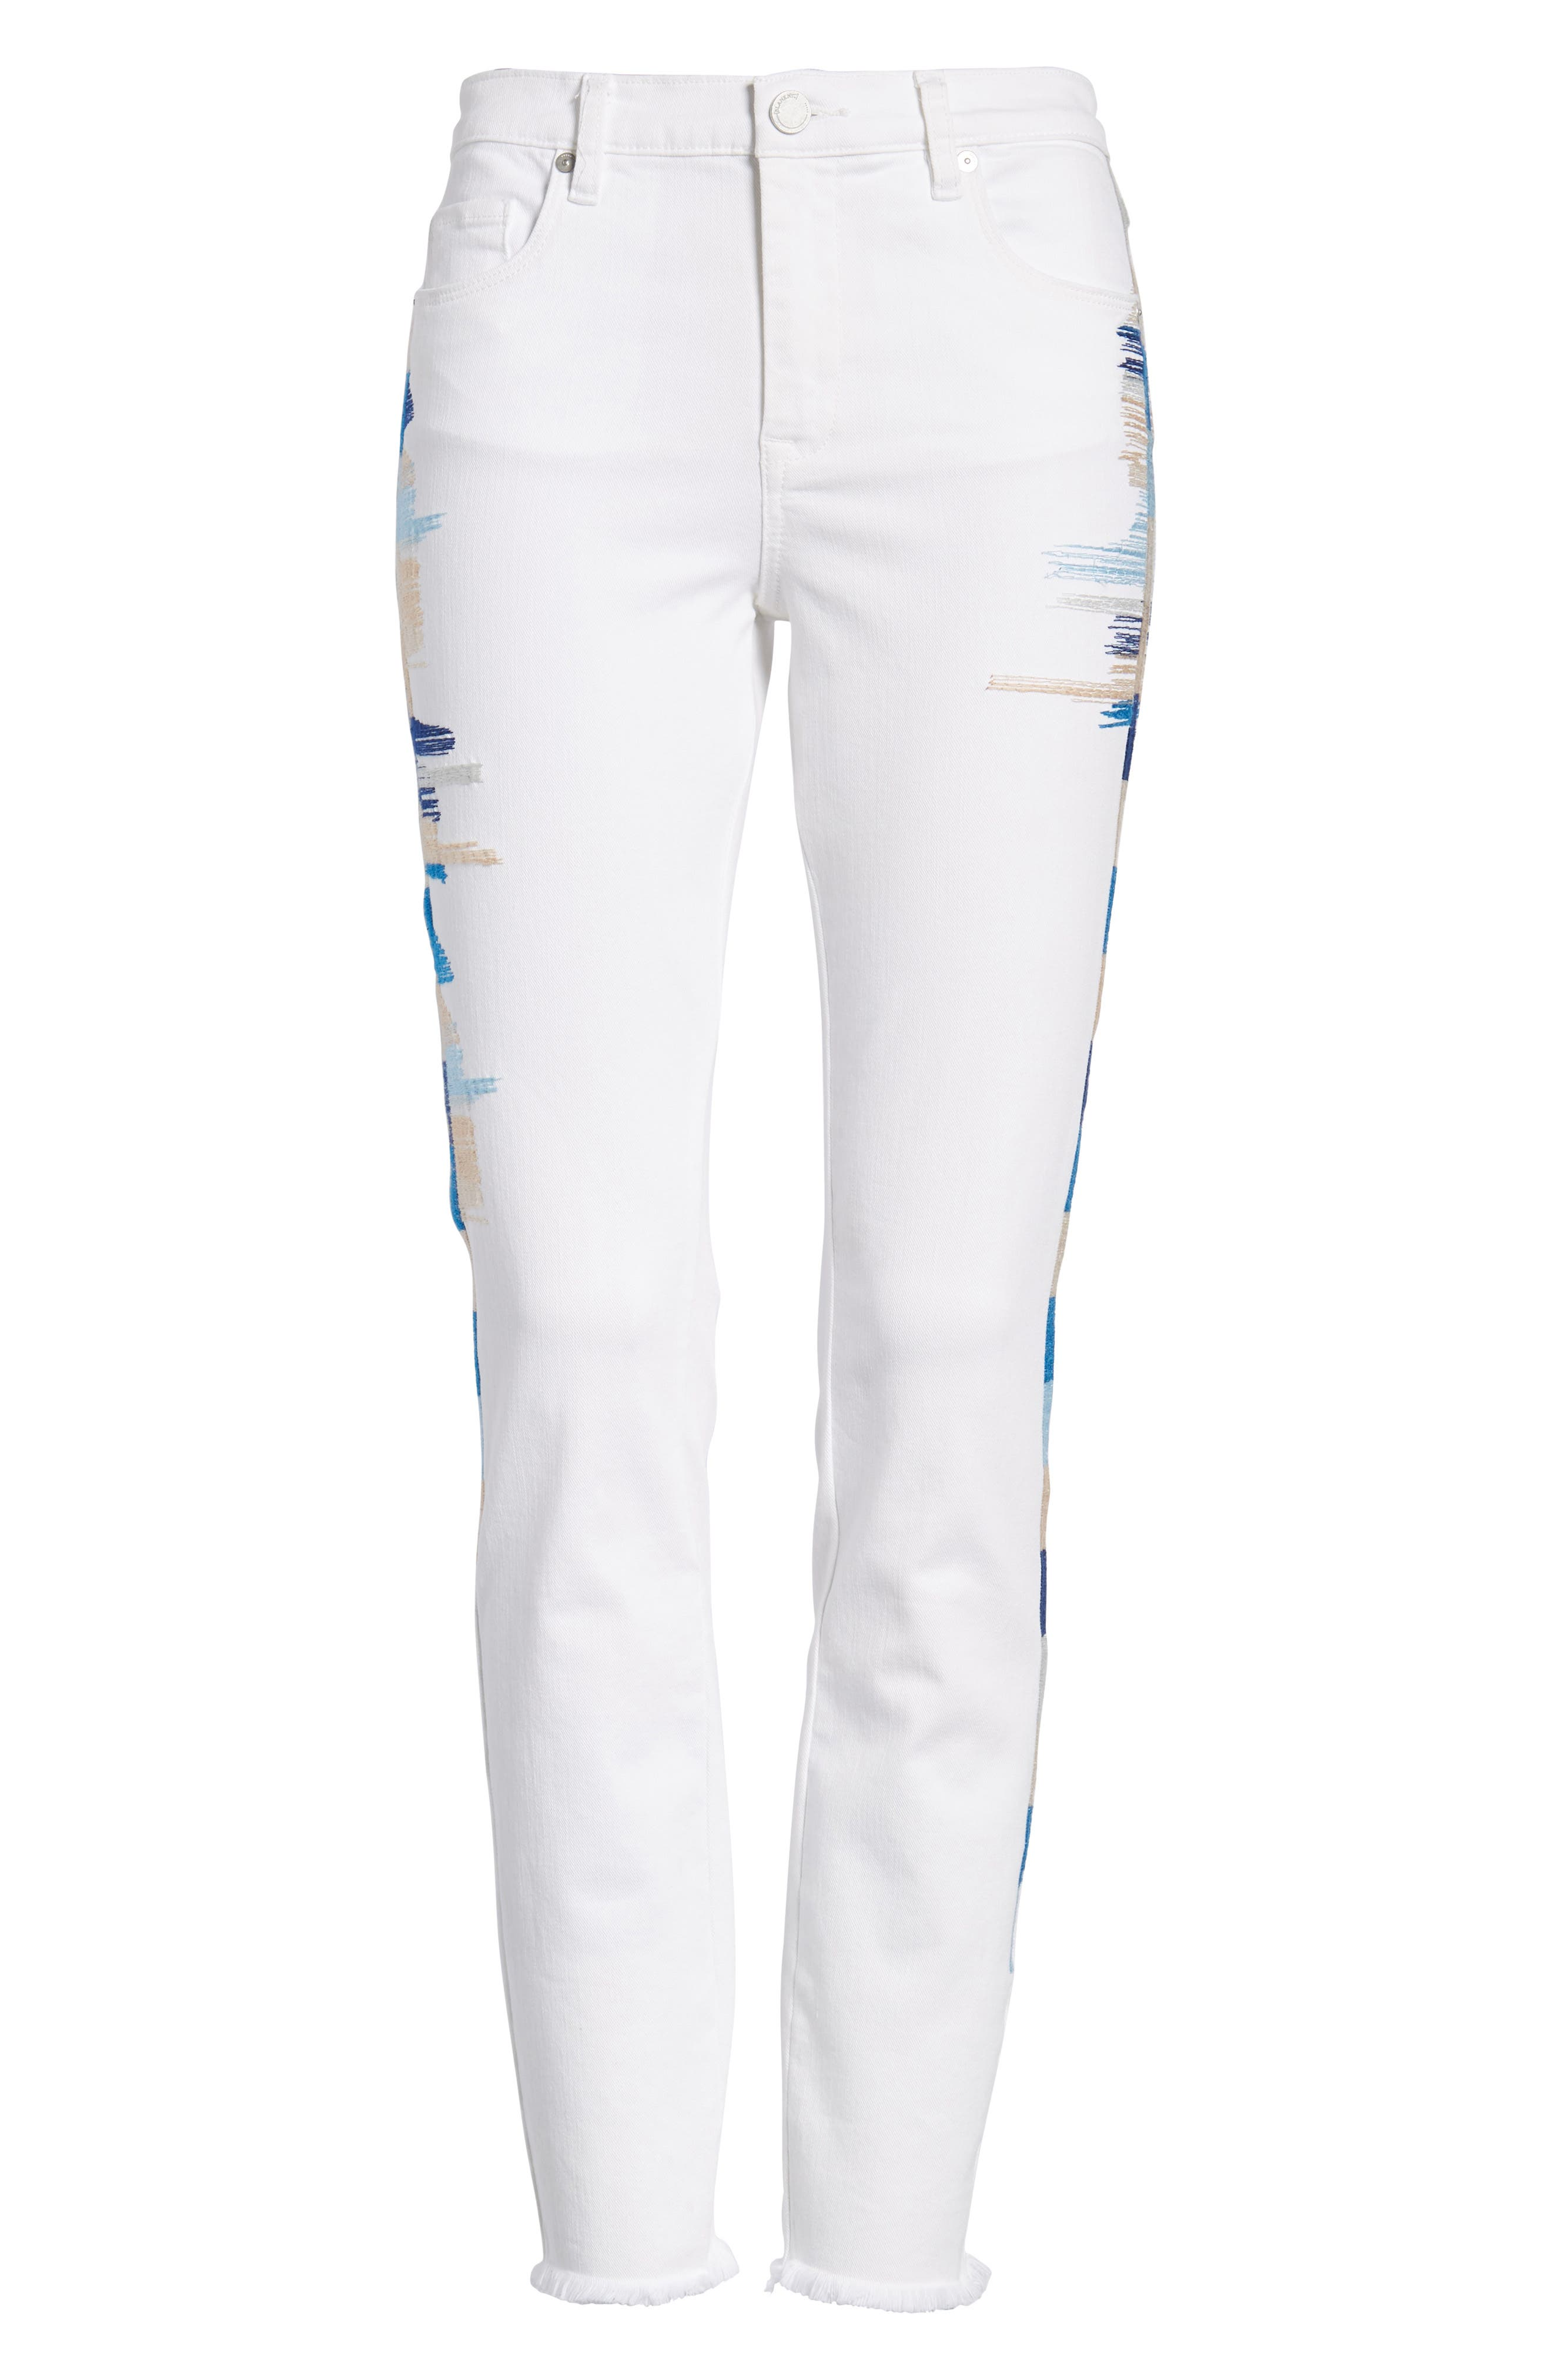 Bond Embroidered Skinny Jeans,                             Alternate thumbnail 7, color,                             110